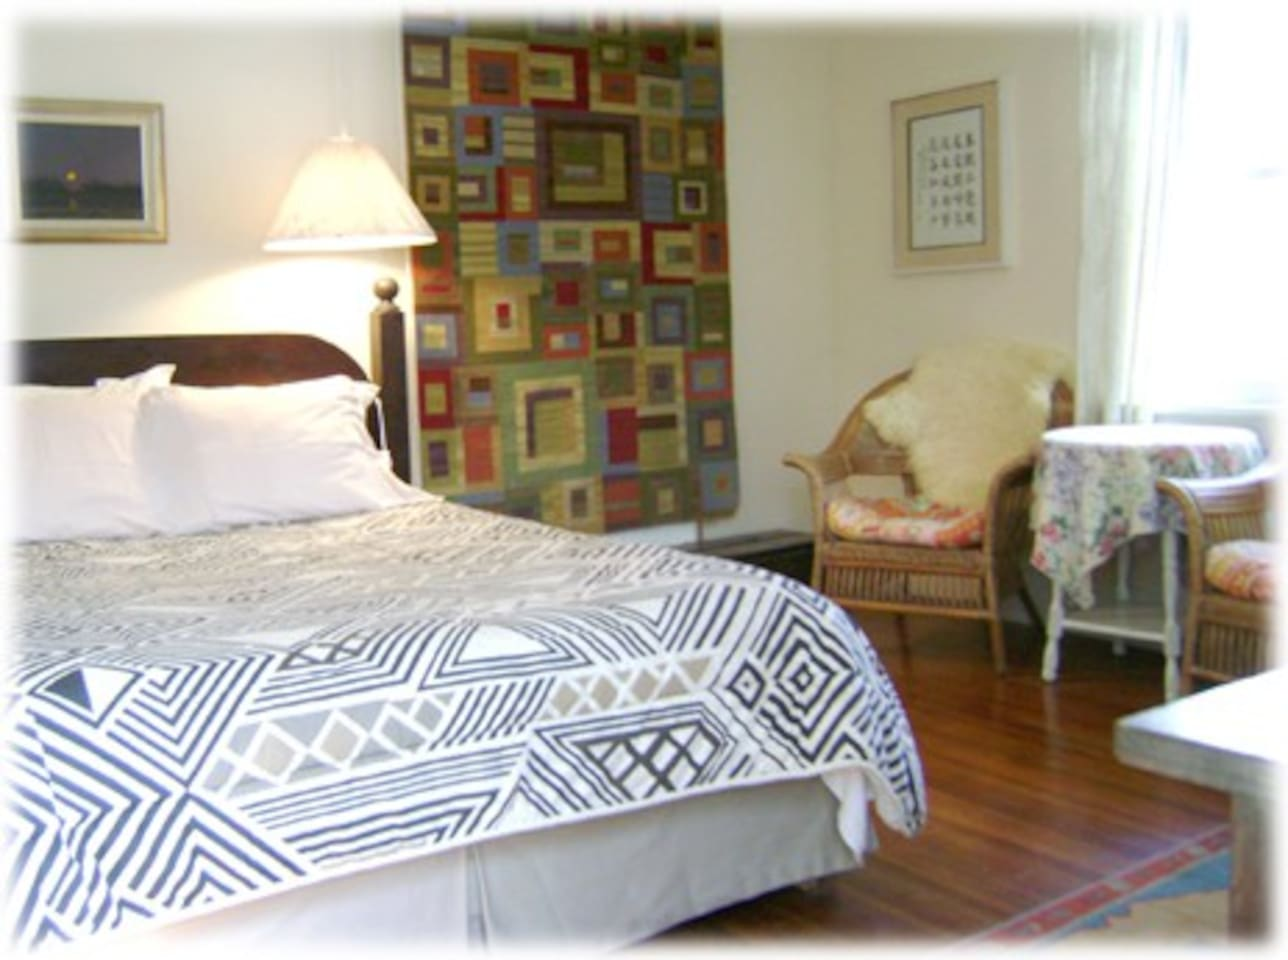 private room in bed and breakfast morning glory bnb Woodstock south room